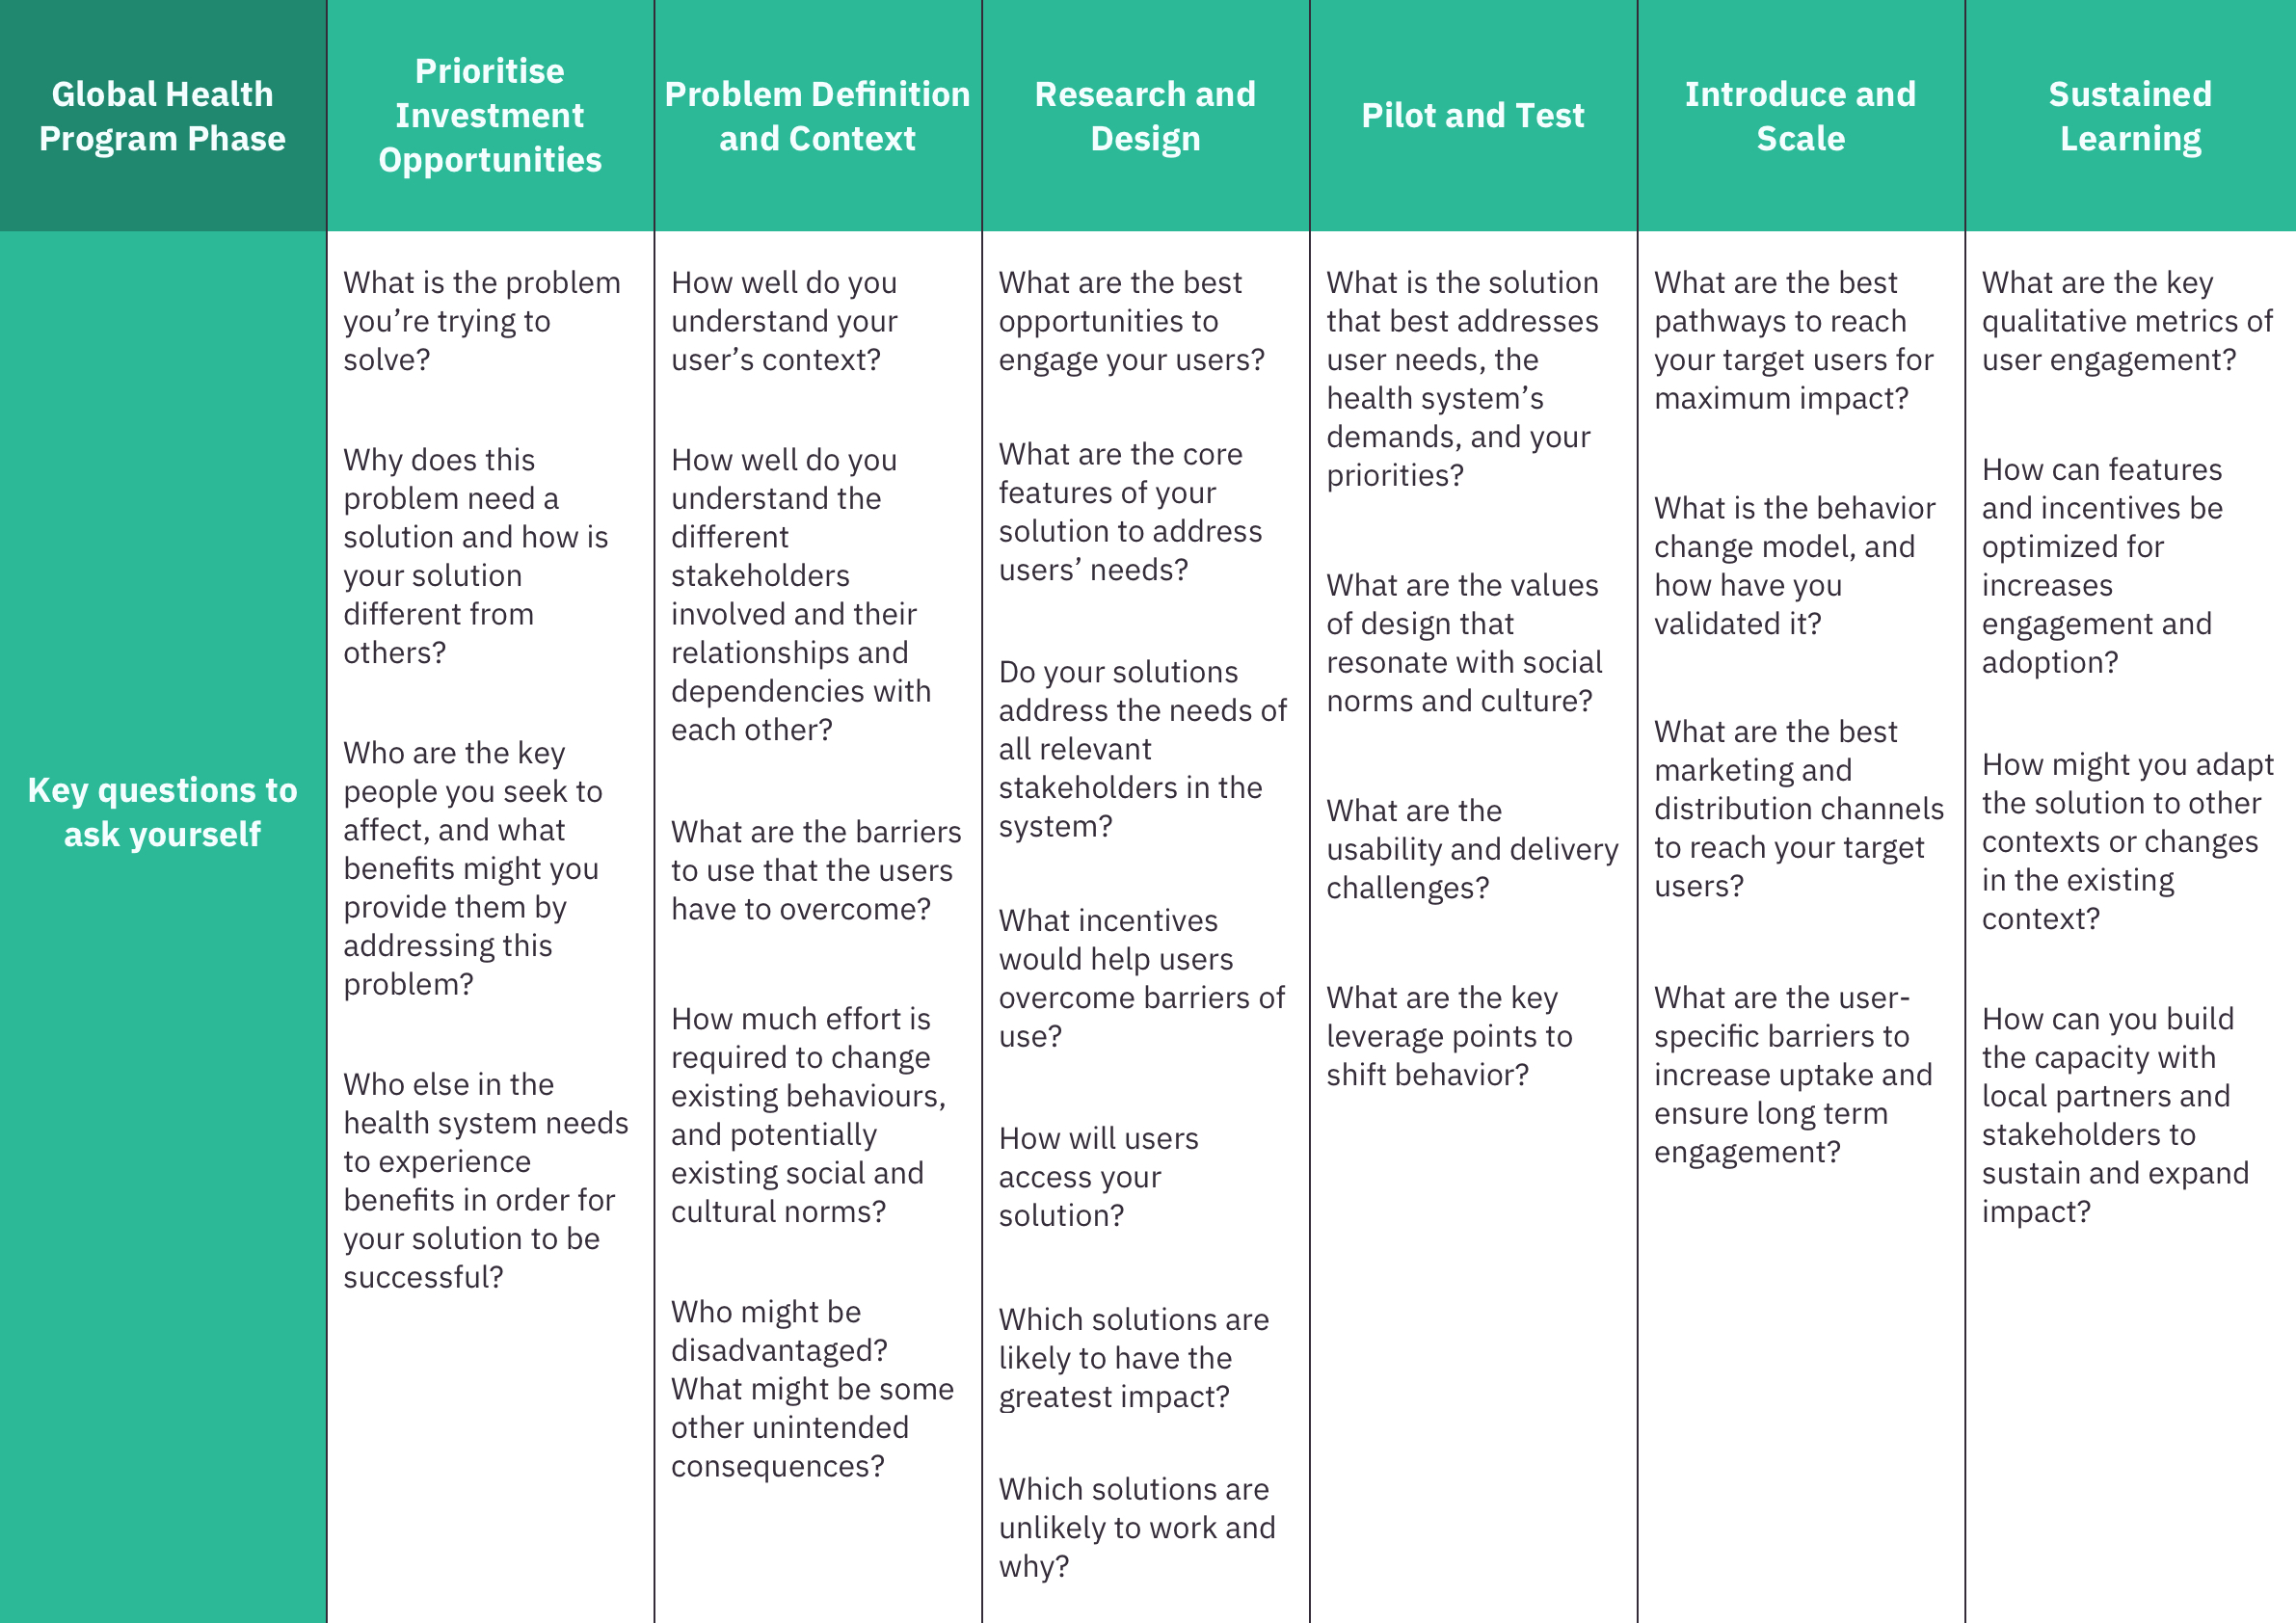 Matrix showing key questions to ask yourself at the different phases of a global health program